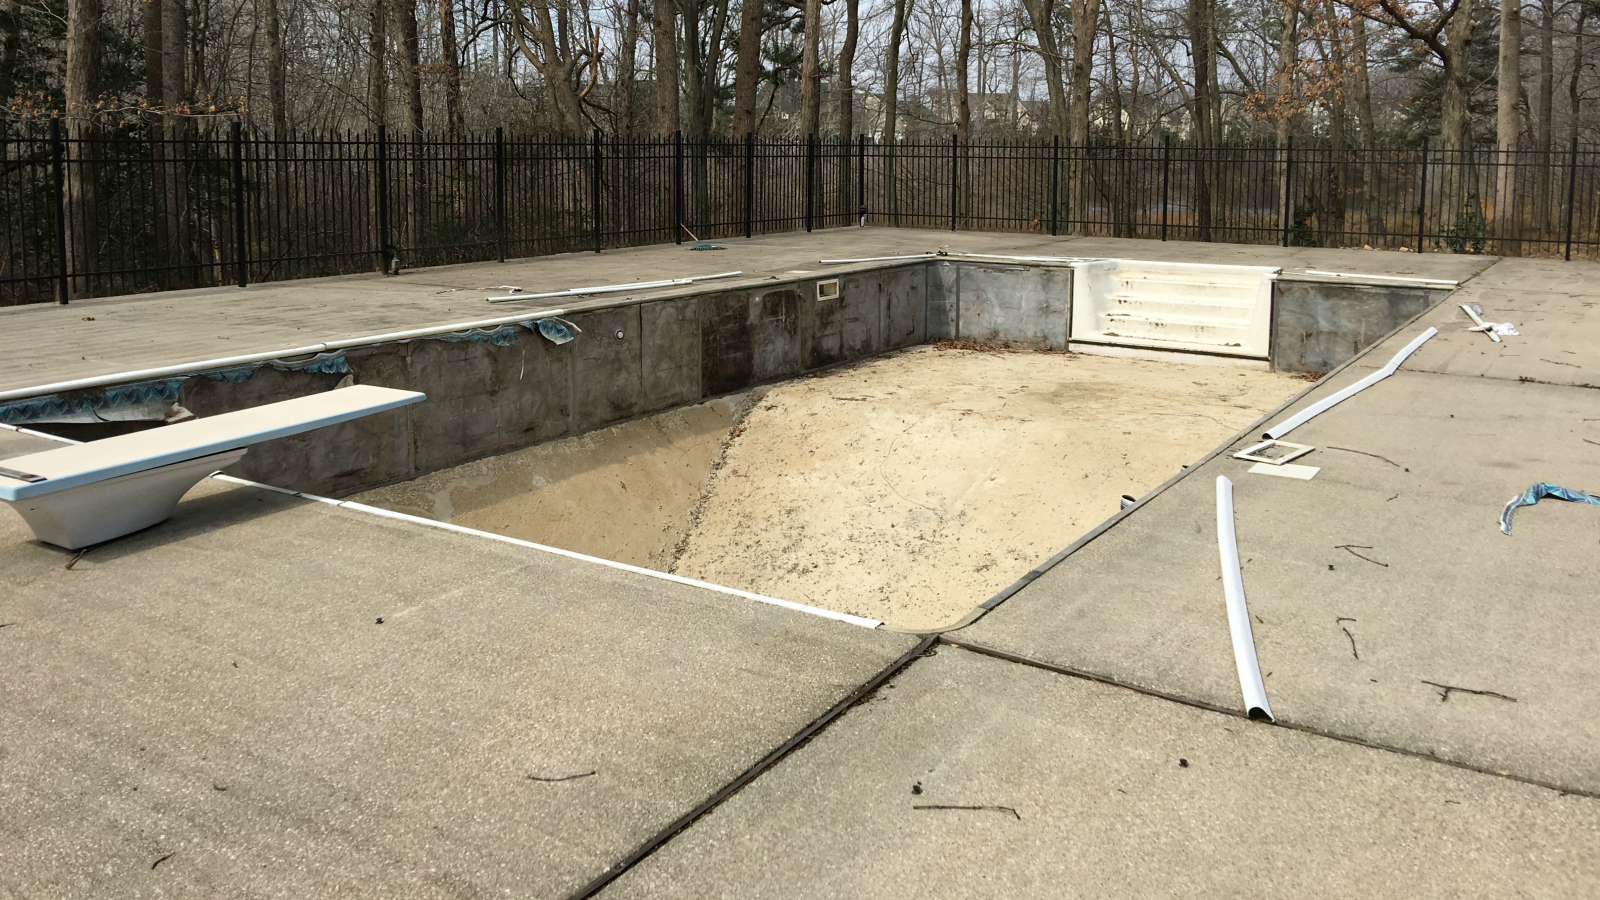 16_lingo-og-empty-proj Custom Swimming Pool Design, Renovation & Inspection - Carter Aquatics